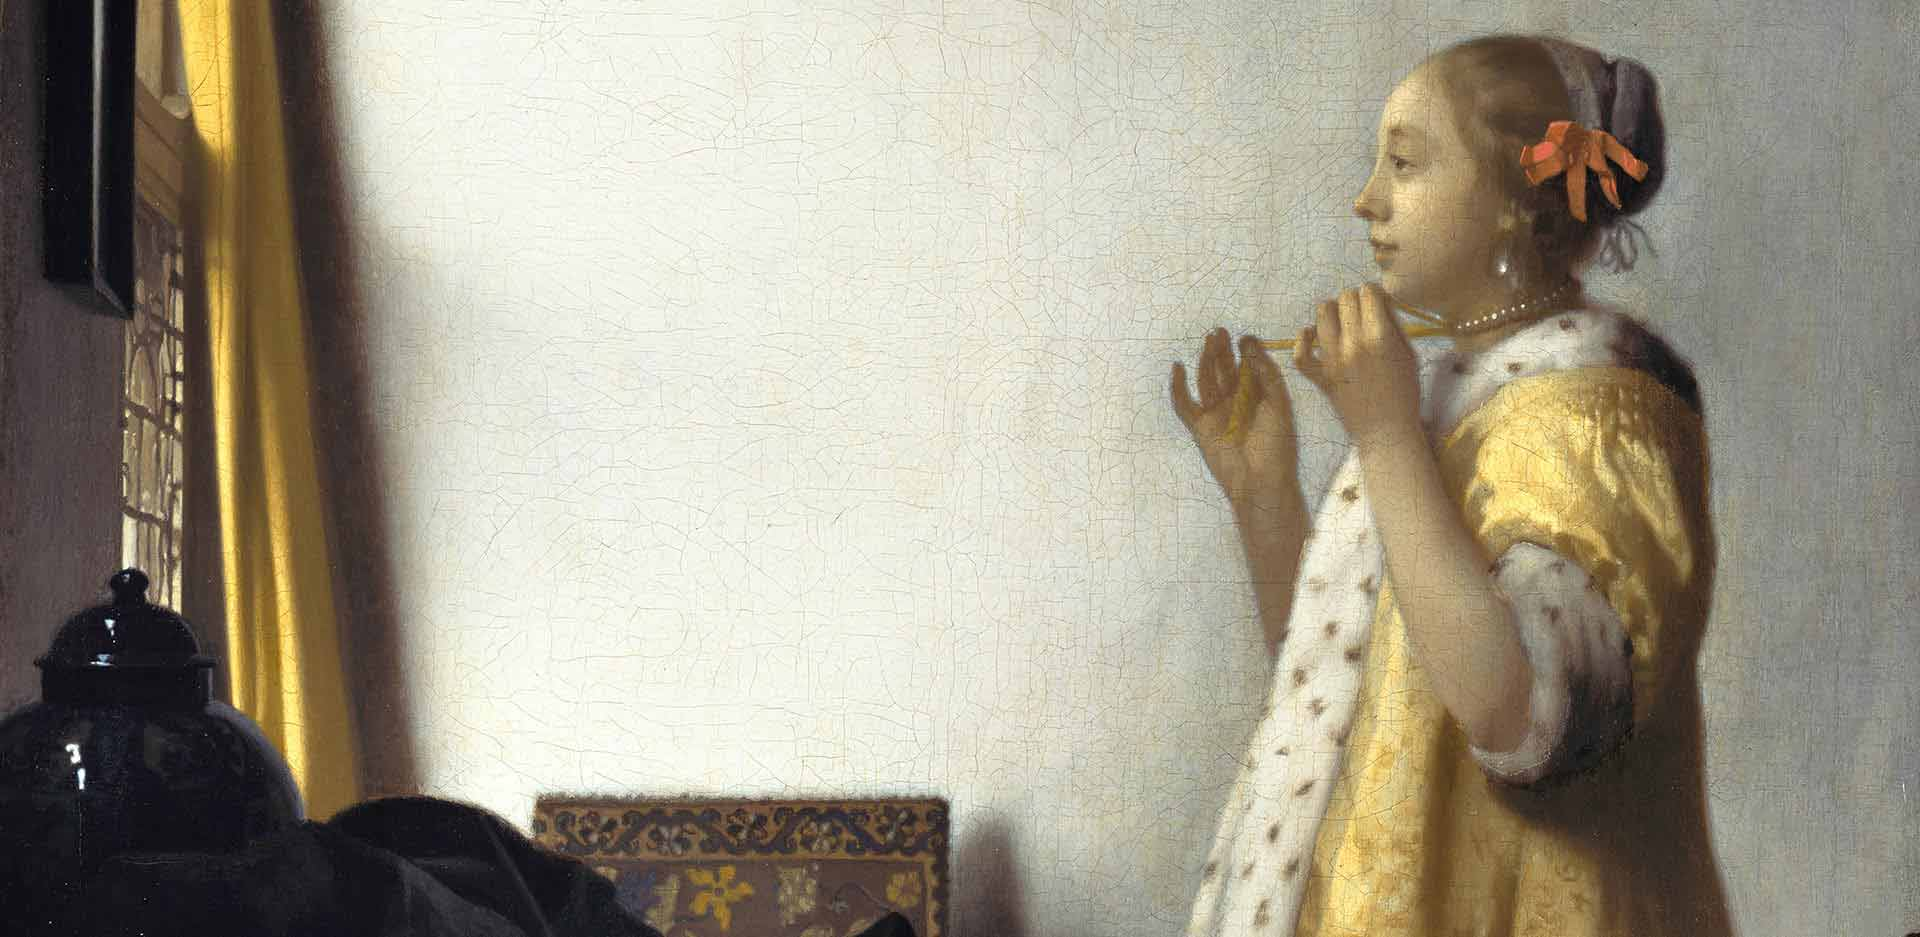 Johannes Vermeer, Woman with a Pearl Necklace, 1663/63 (detail)